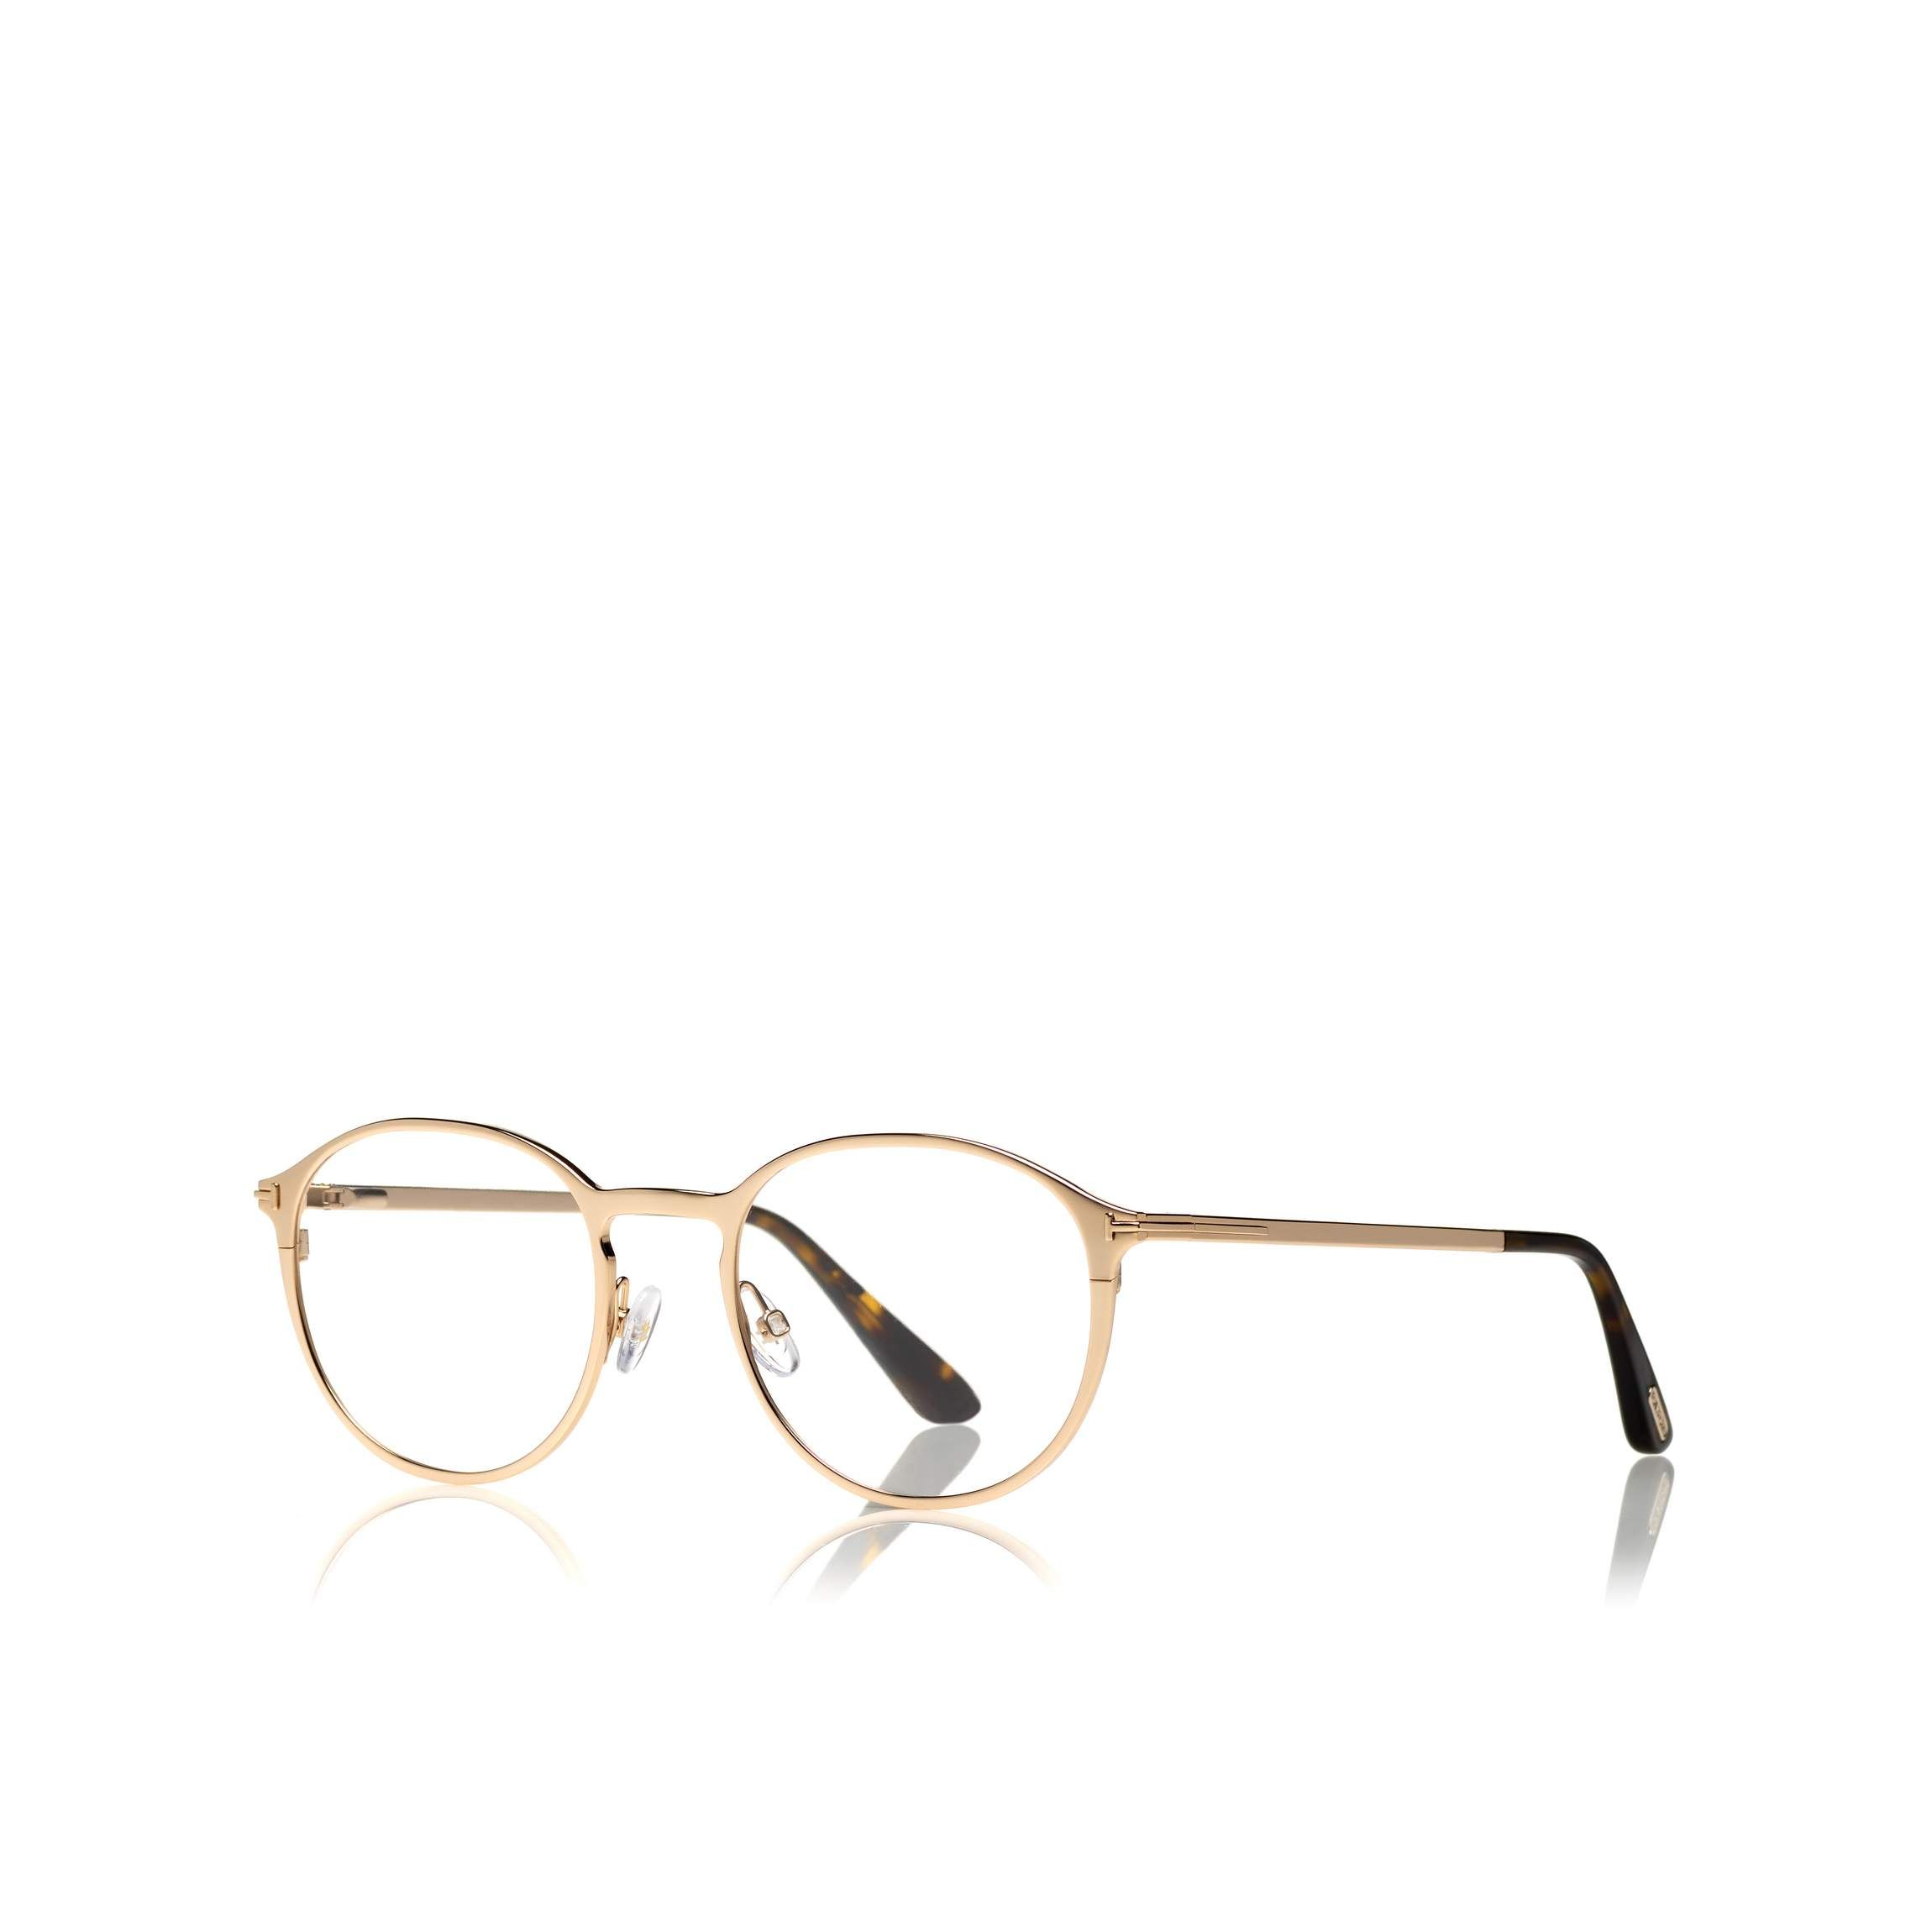 ac5ce615d2bd Tom Ford SOFT ROUNDED OPTICAL FRAME WITH MAGNETIC CLIP - Men